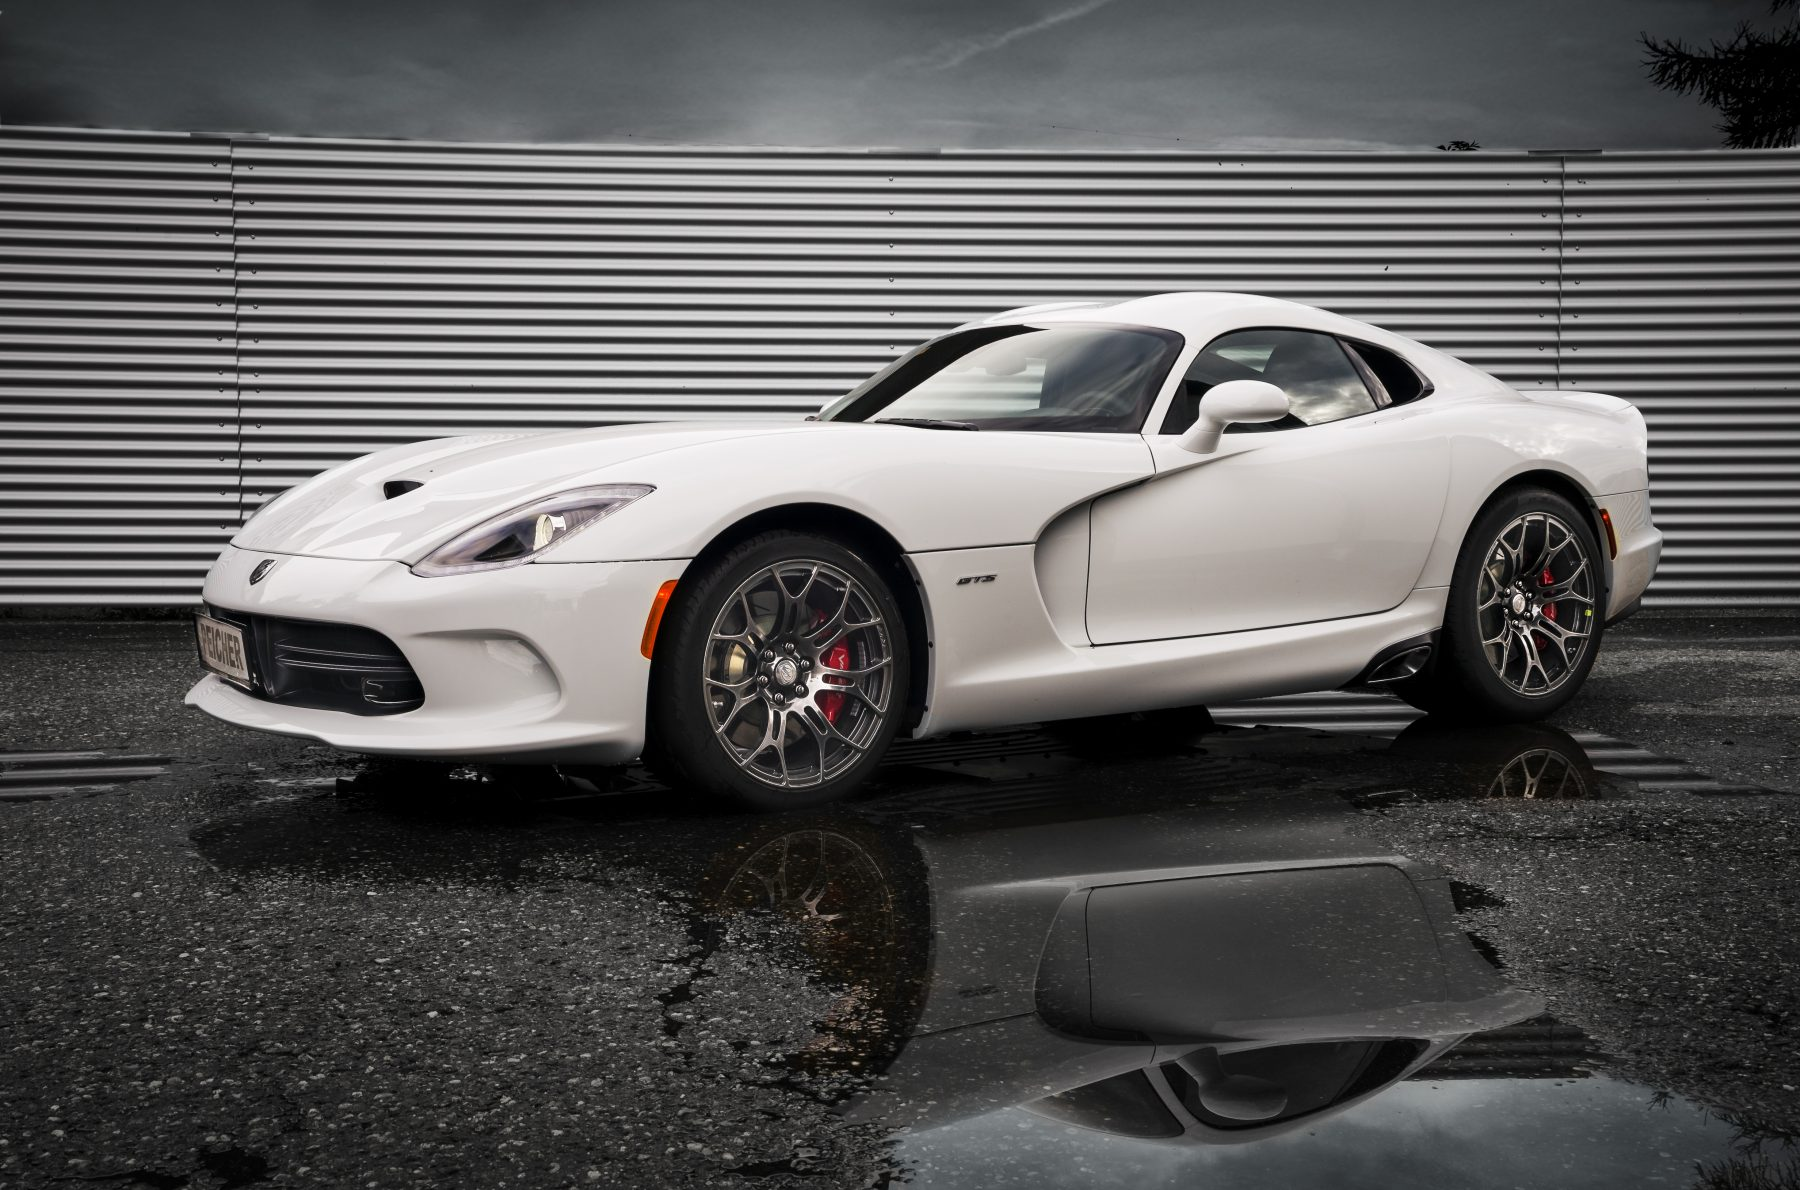 Peicher US-Cars Dodge Viper SRT GTS Coupe, weiß, Ansicht links vorne